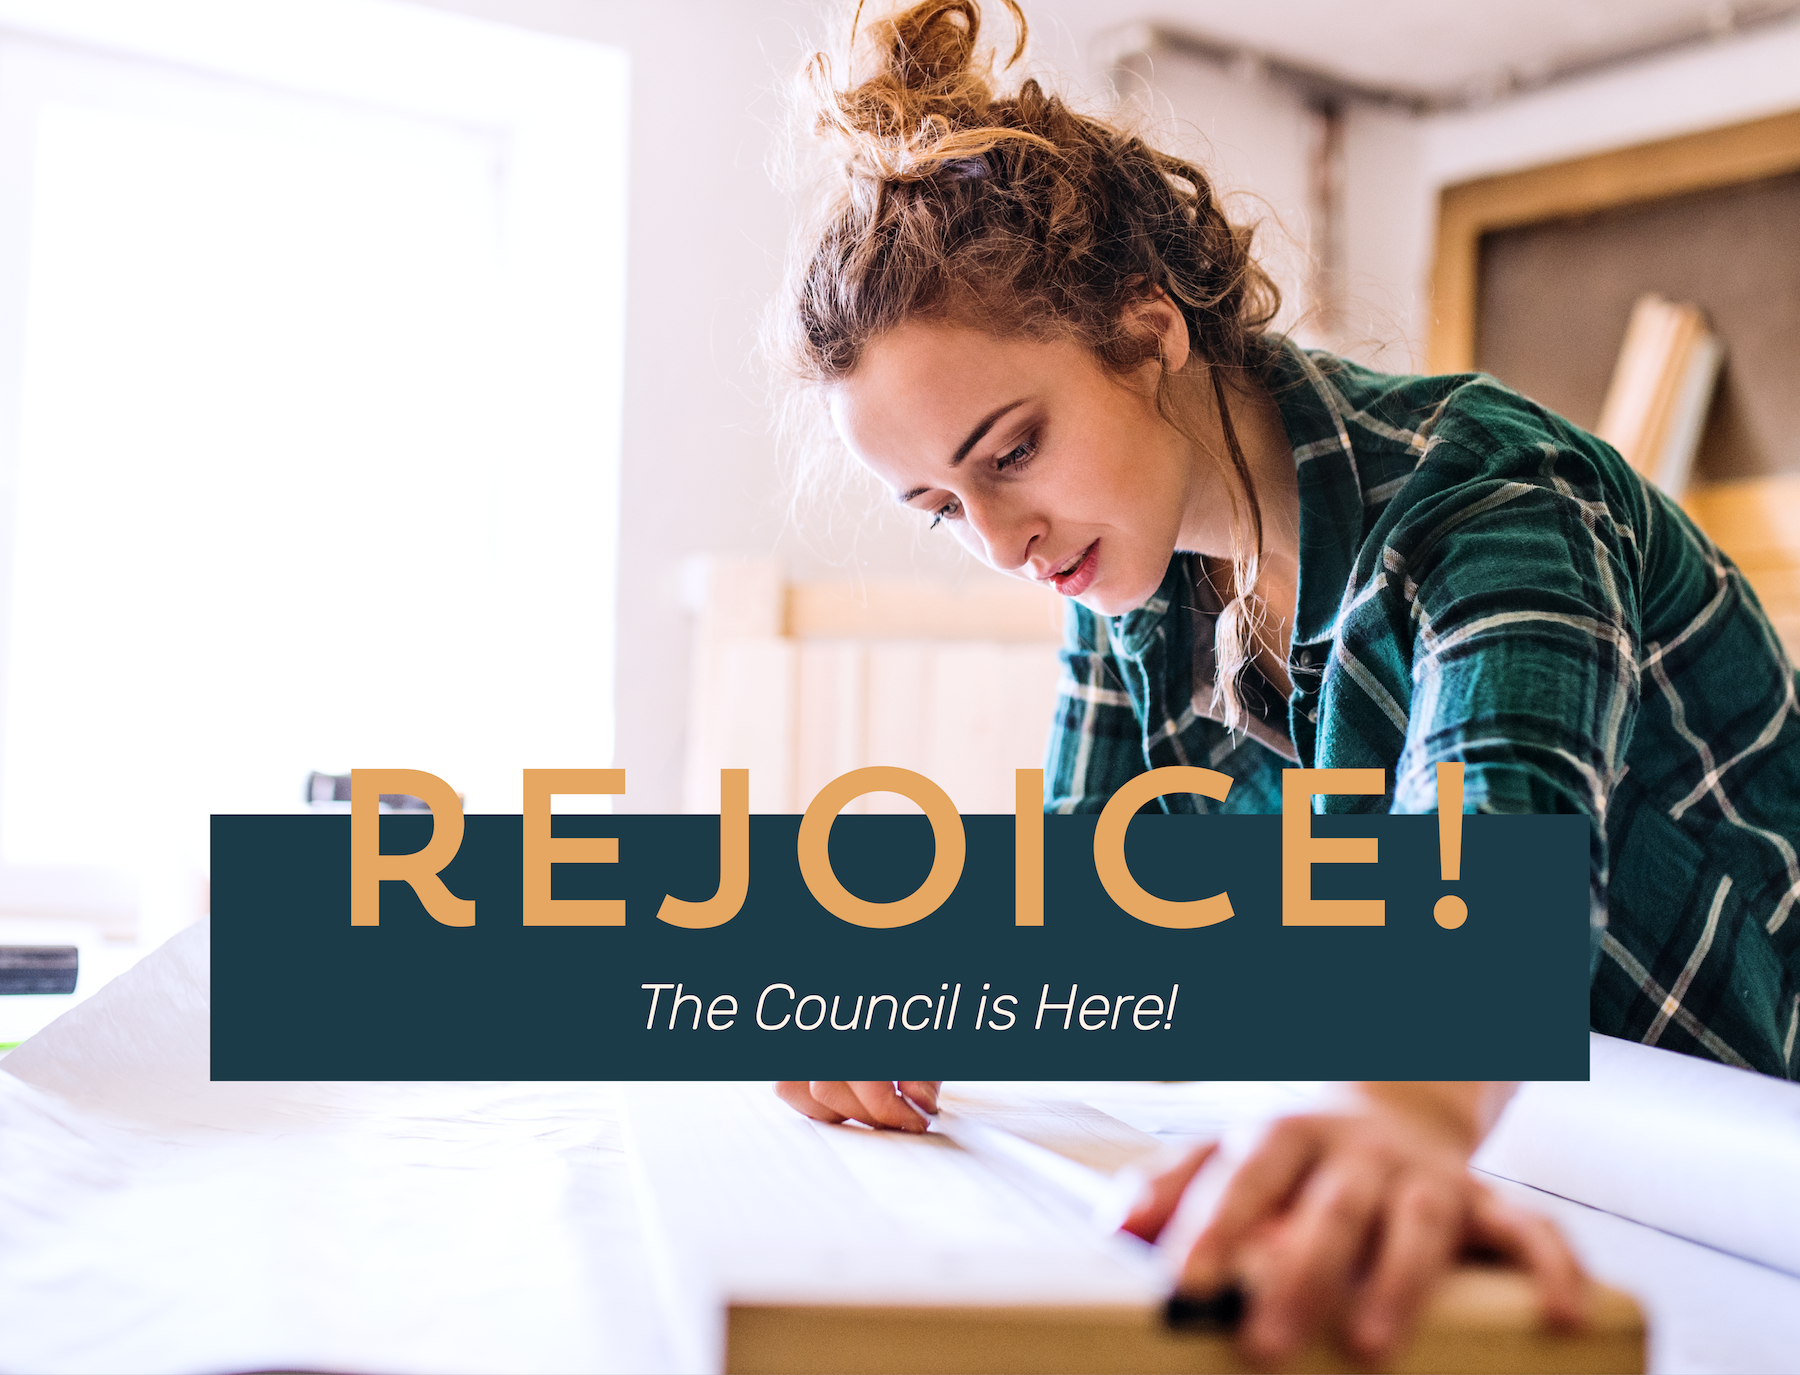 Join The Council | The Merriweather Council